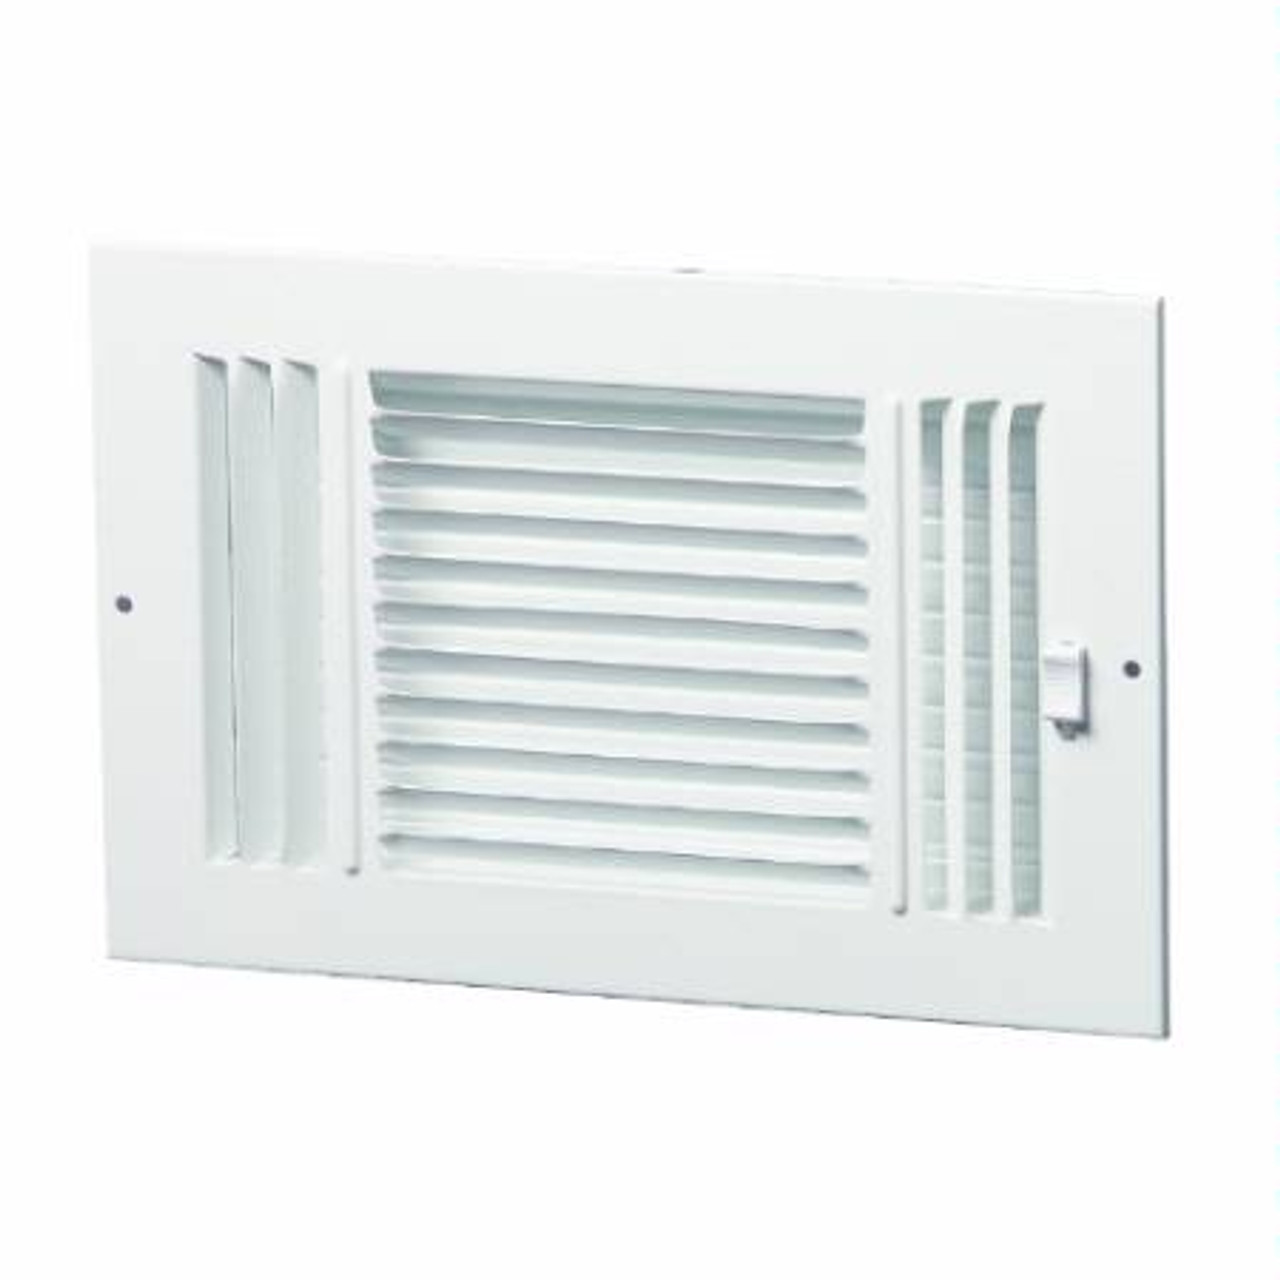 8x6 Pro Select Hvac Vent Stamped Face 3 Way Grille Diffuser